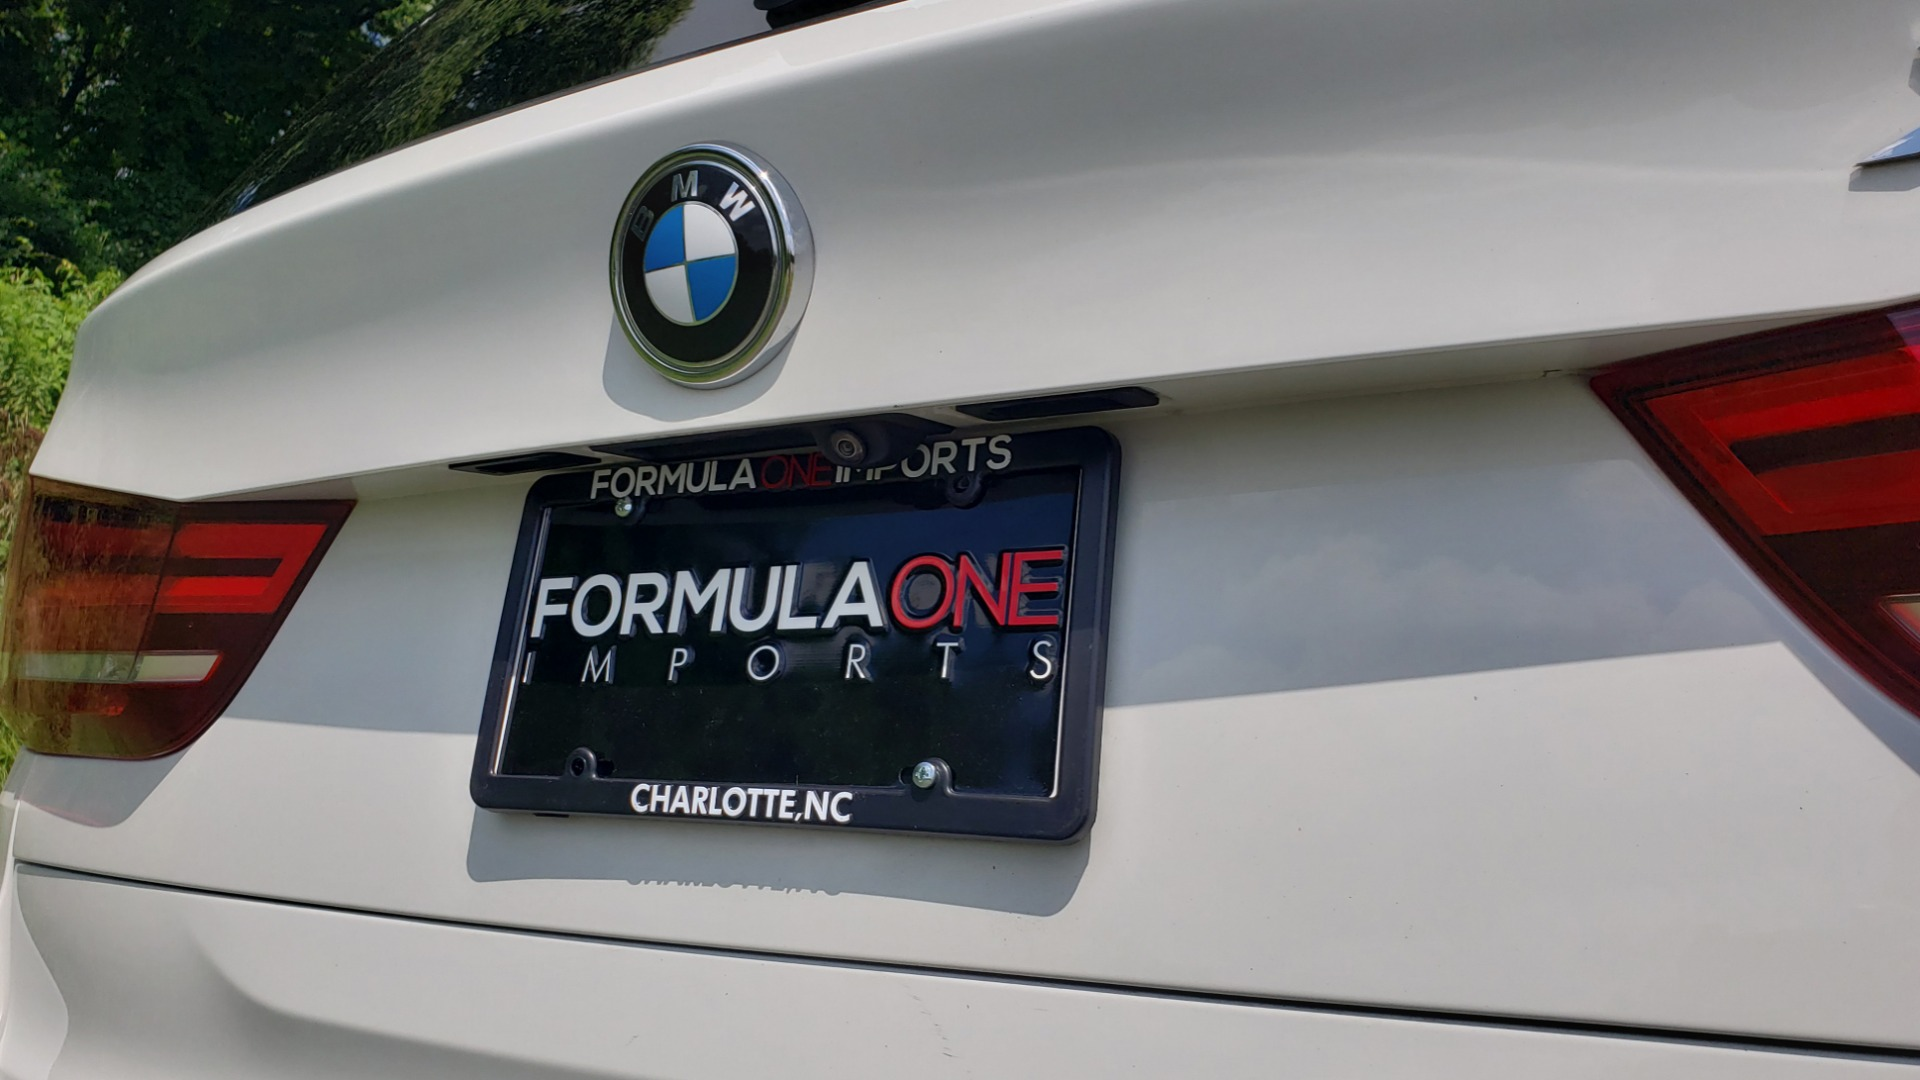 Used 2017 BMW X5 XDRIVE35I / NAV / SUNROOF / RUNNING BOARDS / REARVIEW for sale $33,995 at Formula Imports in Charlotte NC 28227 34